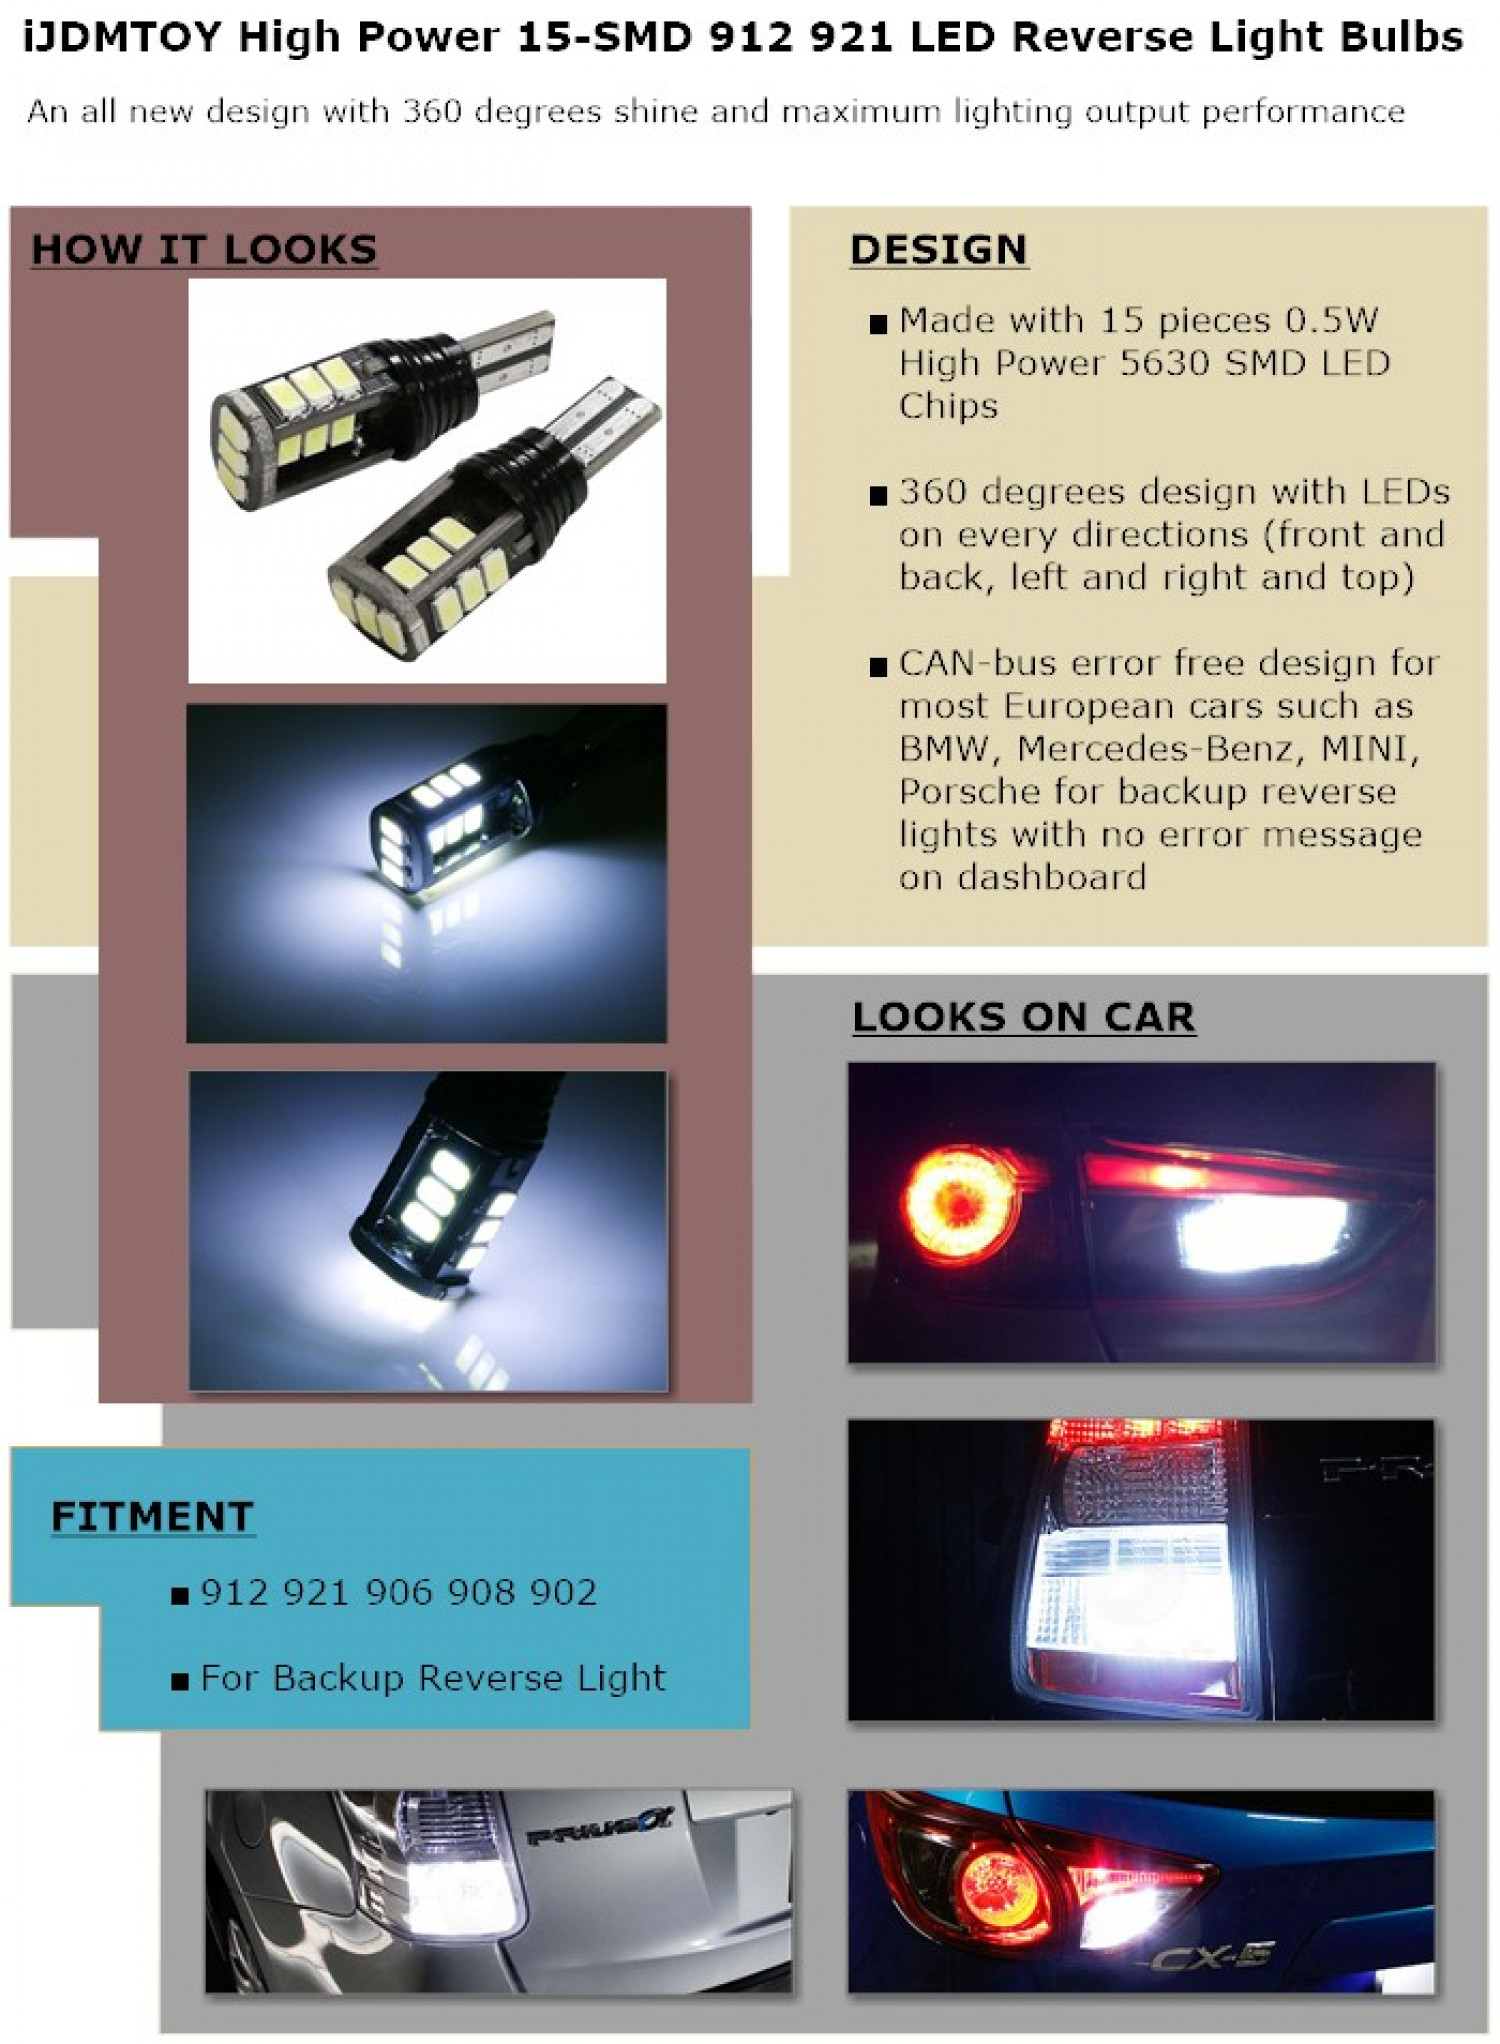 iJDMTOY High Power 921 LED Backup Light Bulbs Infographic